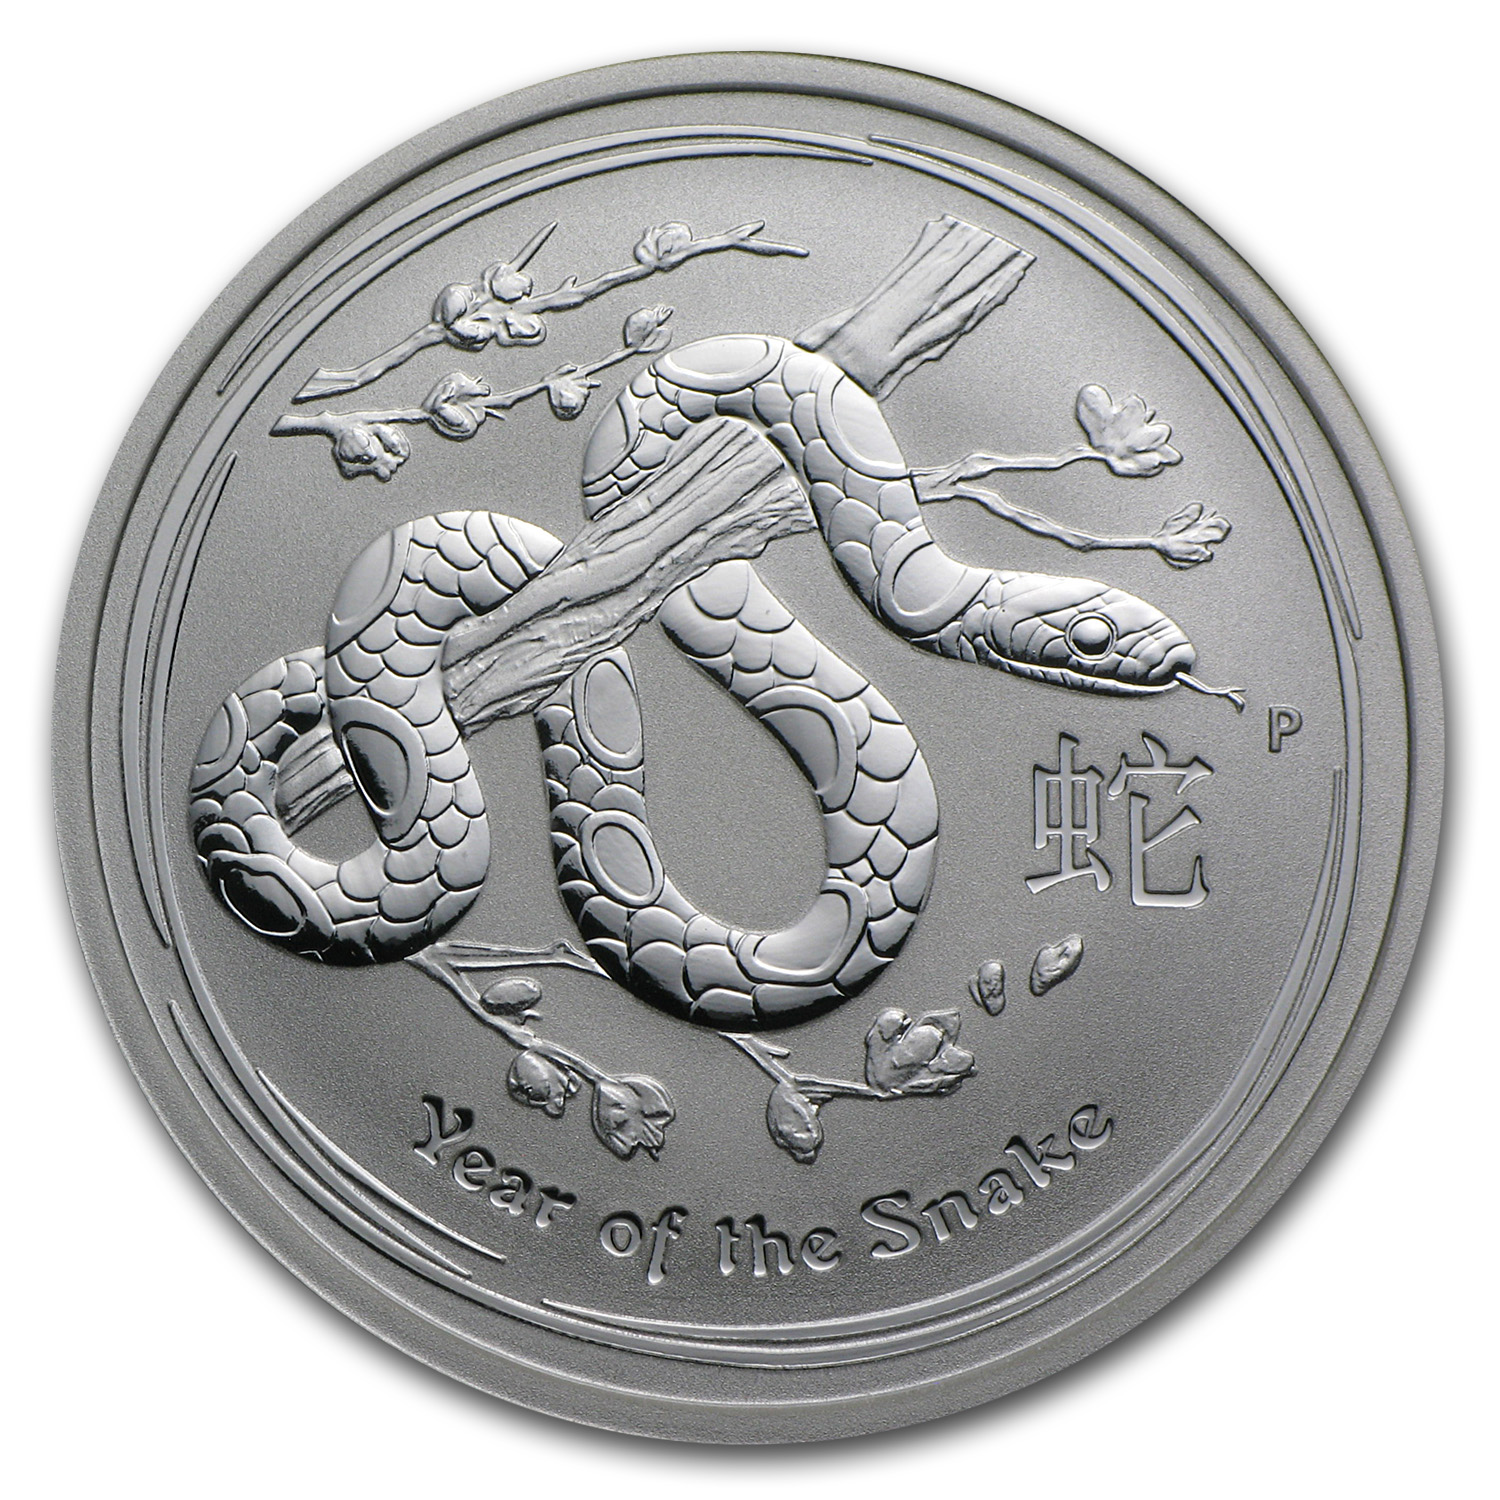 2013 2 oz Silver Australian Year of the Snake BU